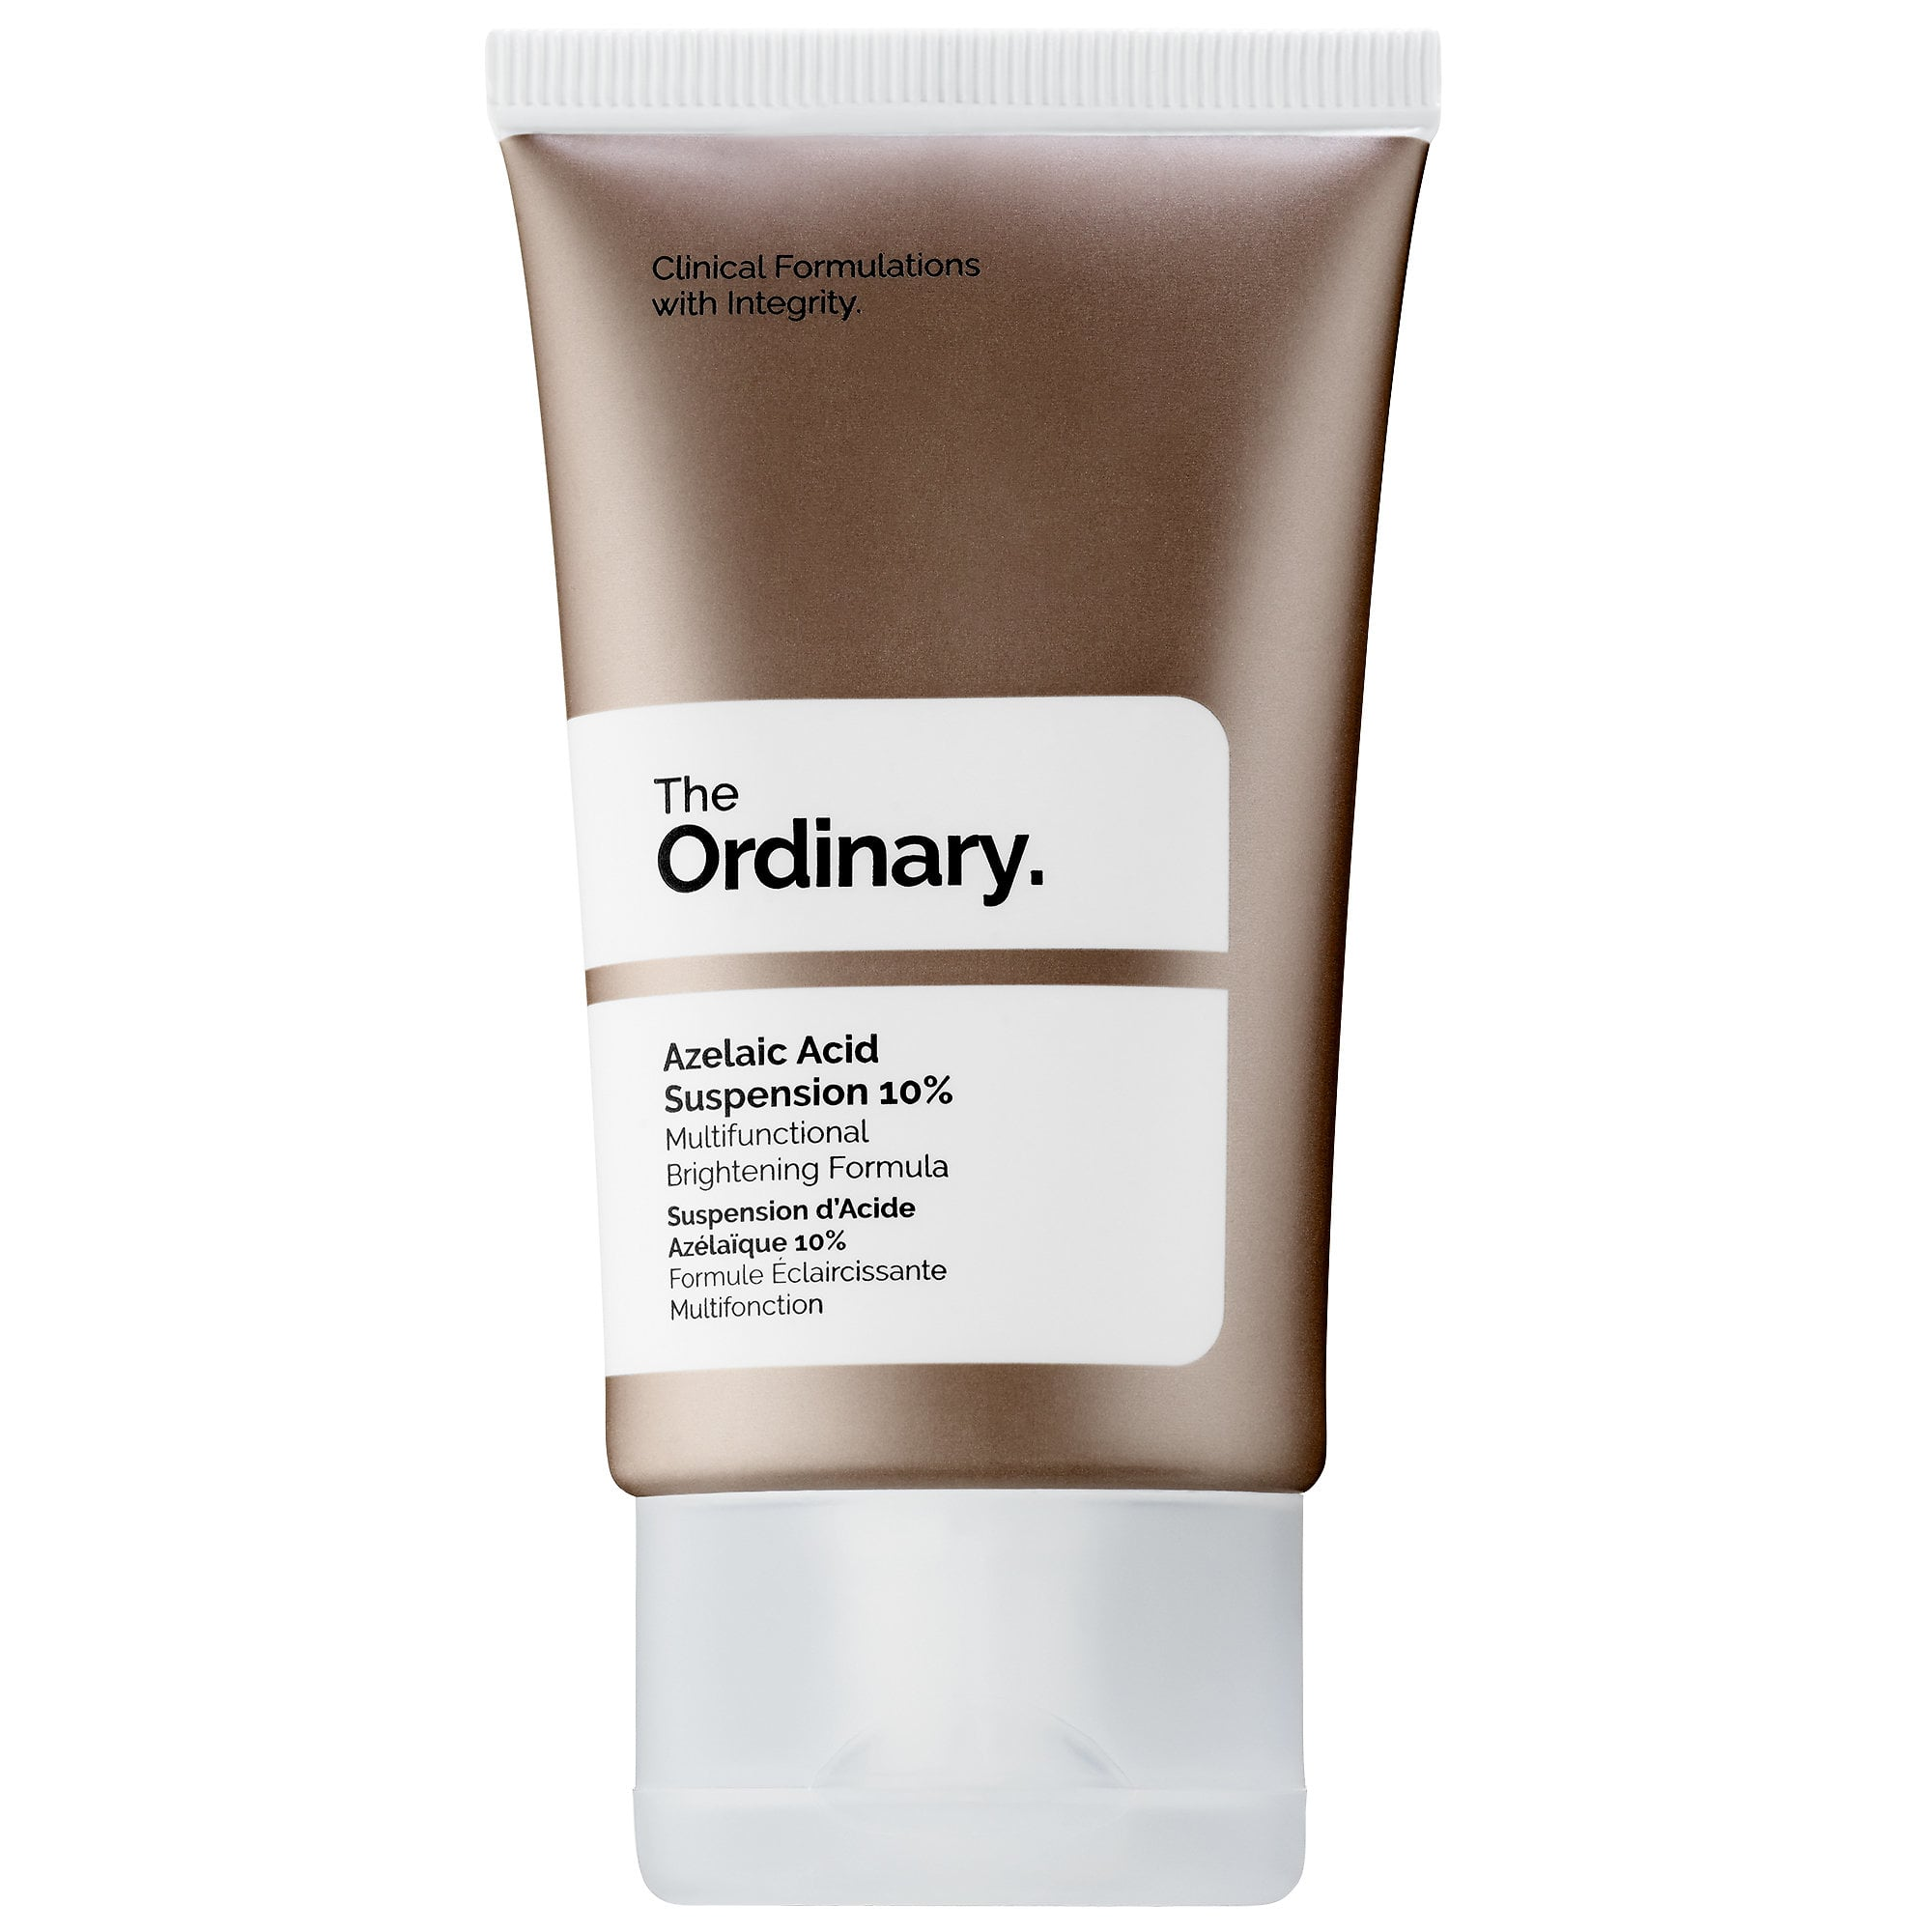 The Ordinary-Azelaic Acid Suspension 10%